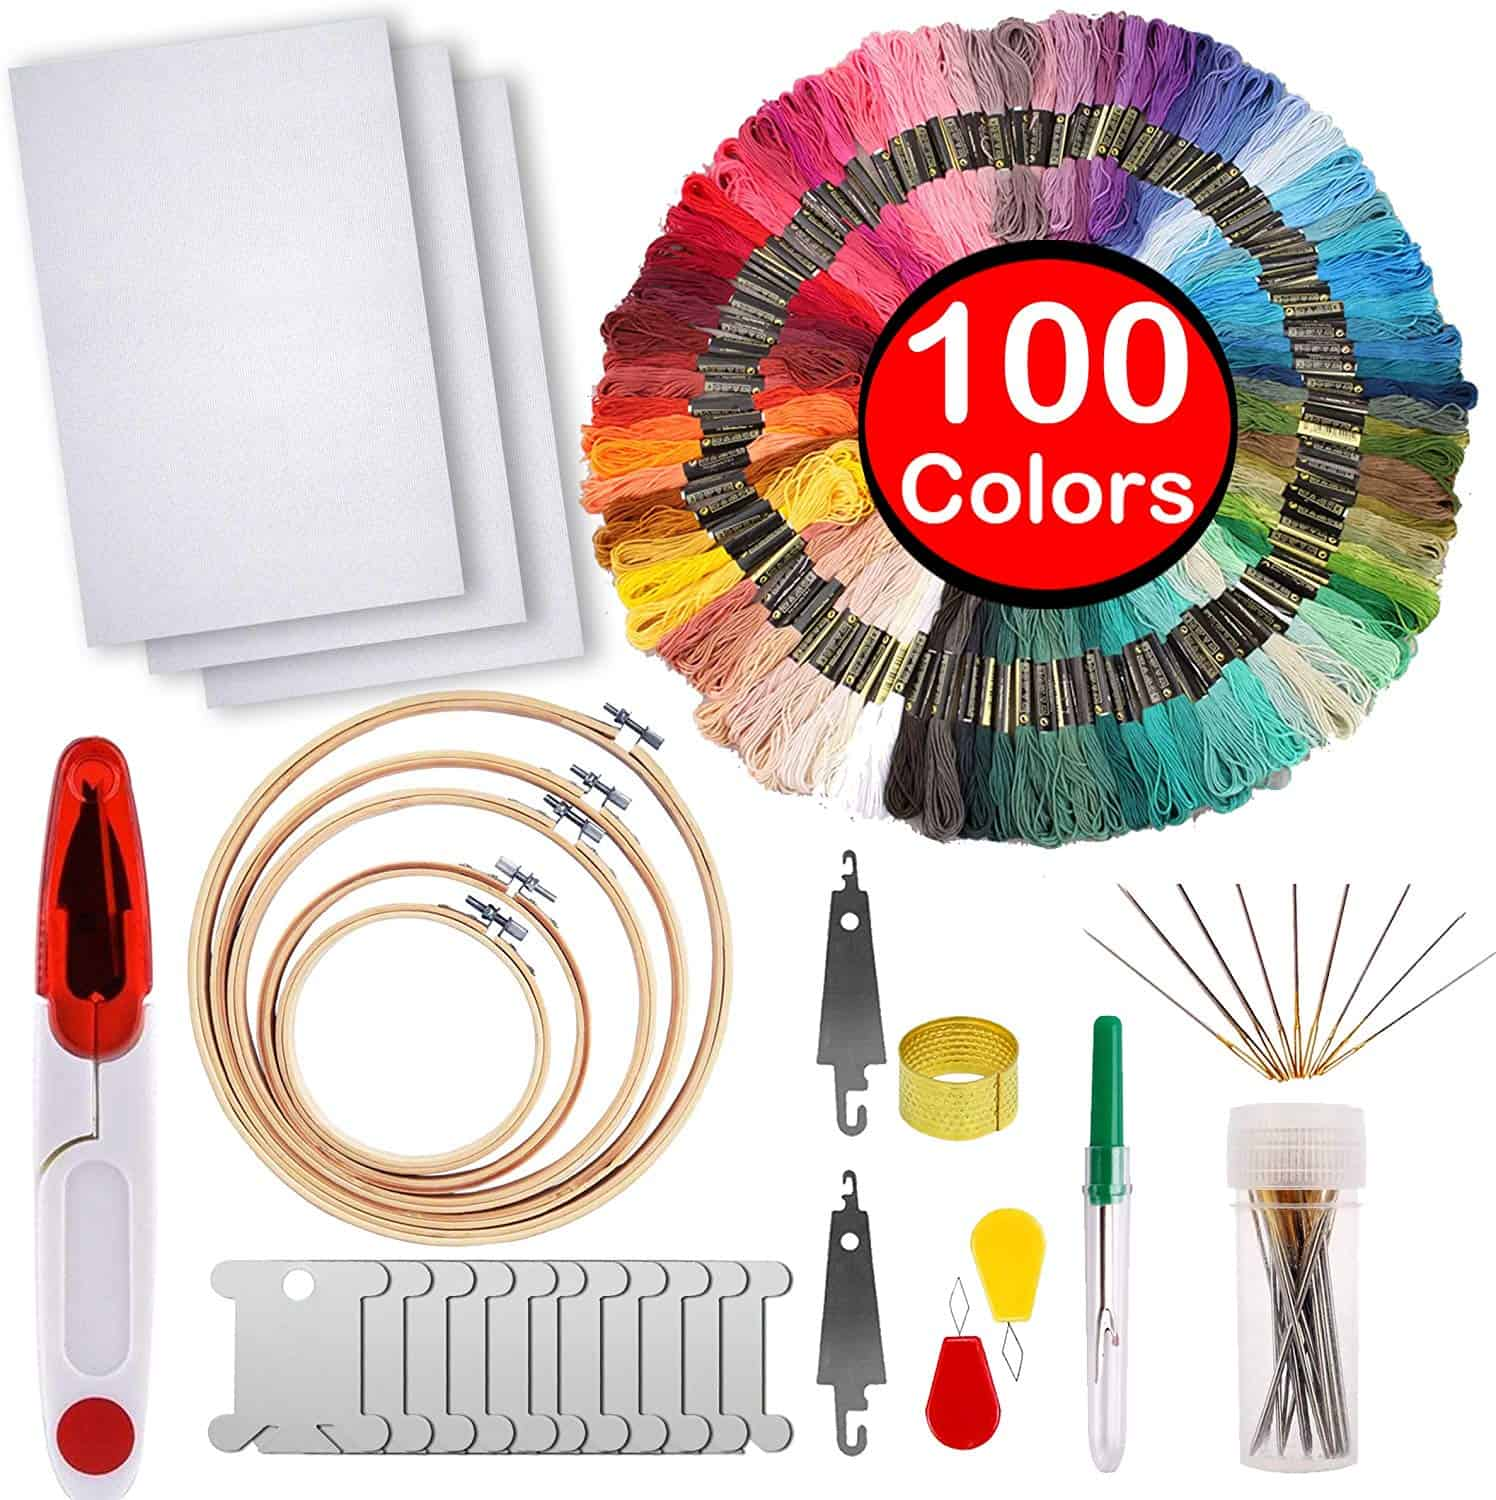 Full range of embroidery starter kit